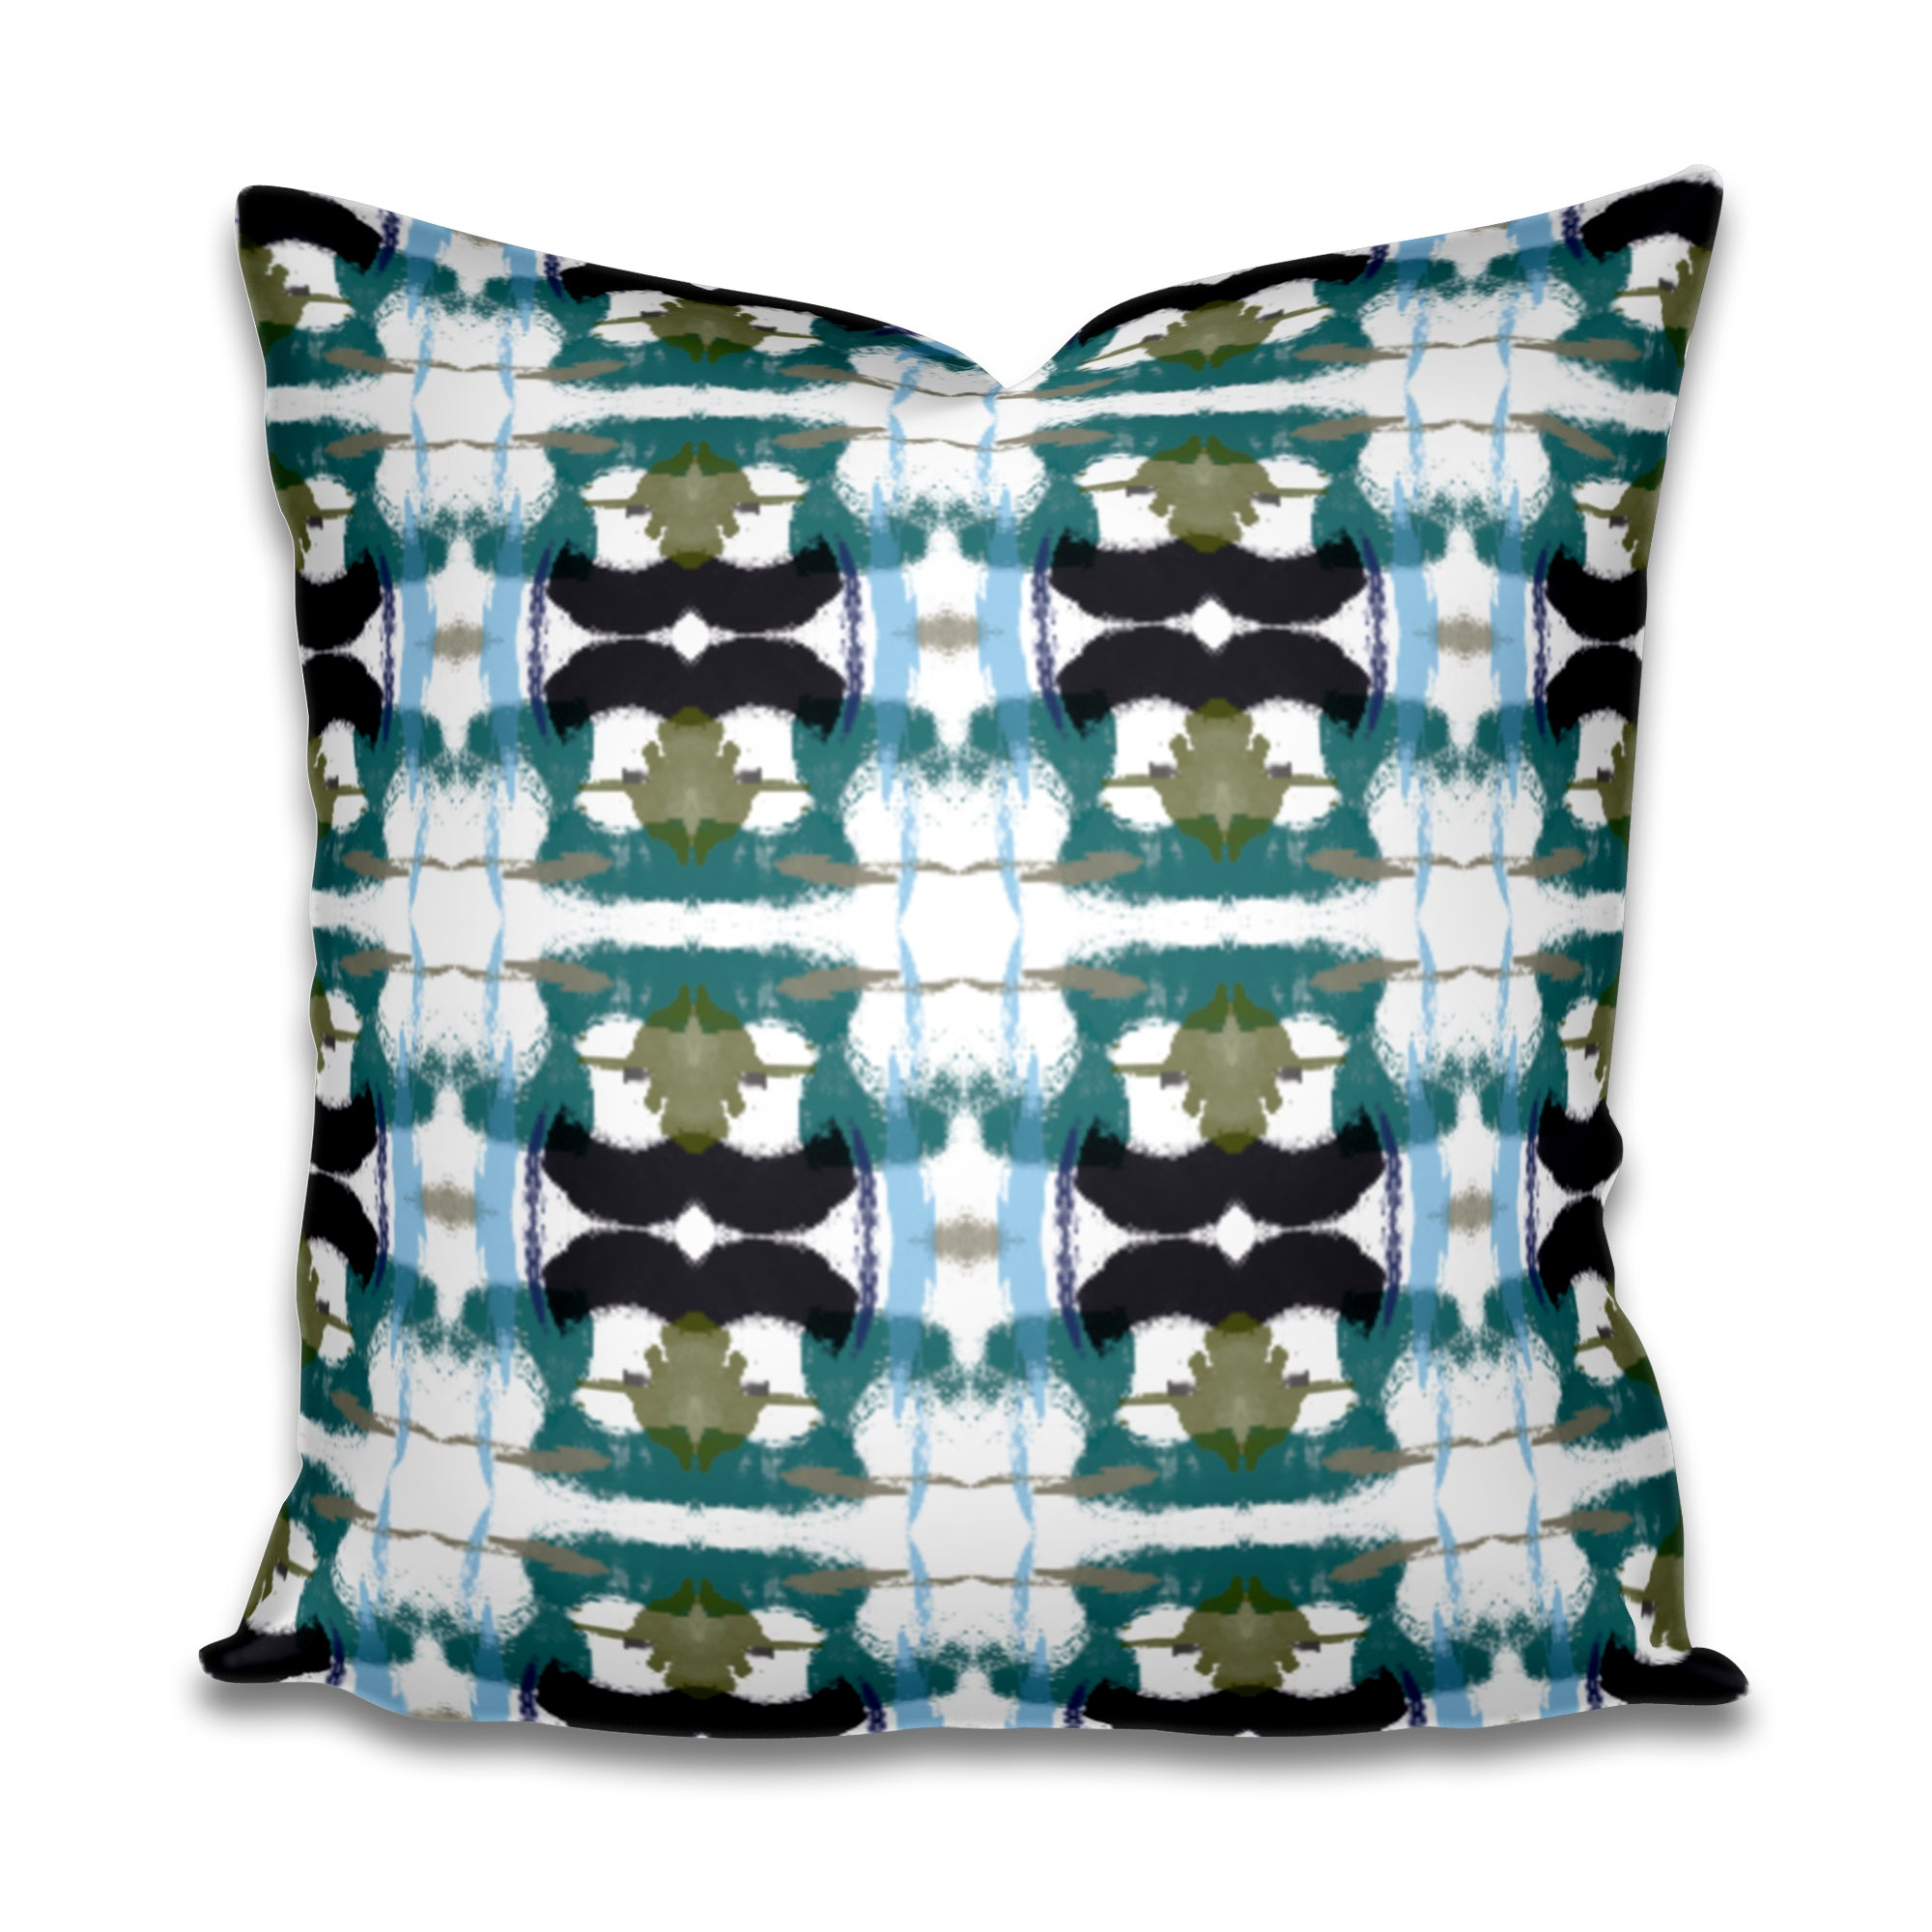 Teal black blue beige pillow, 2019 new pillows